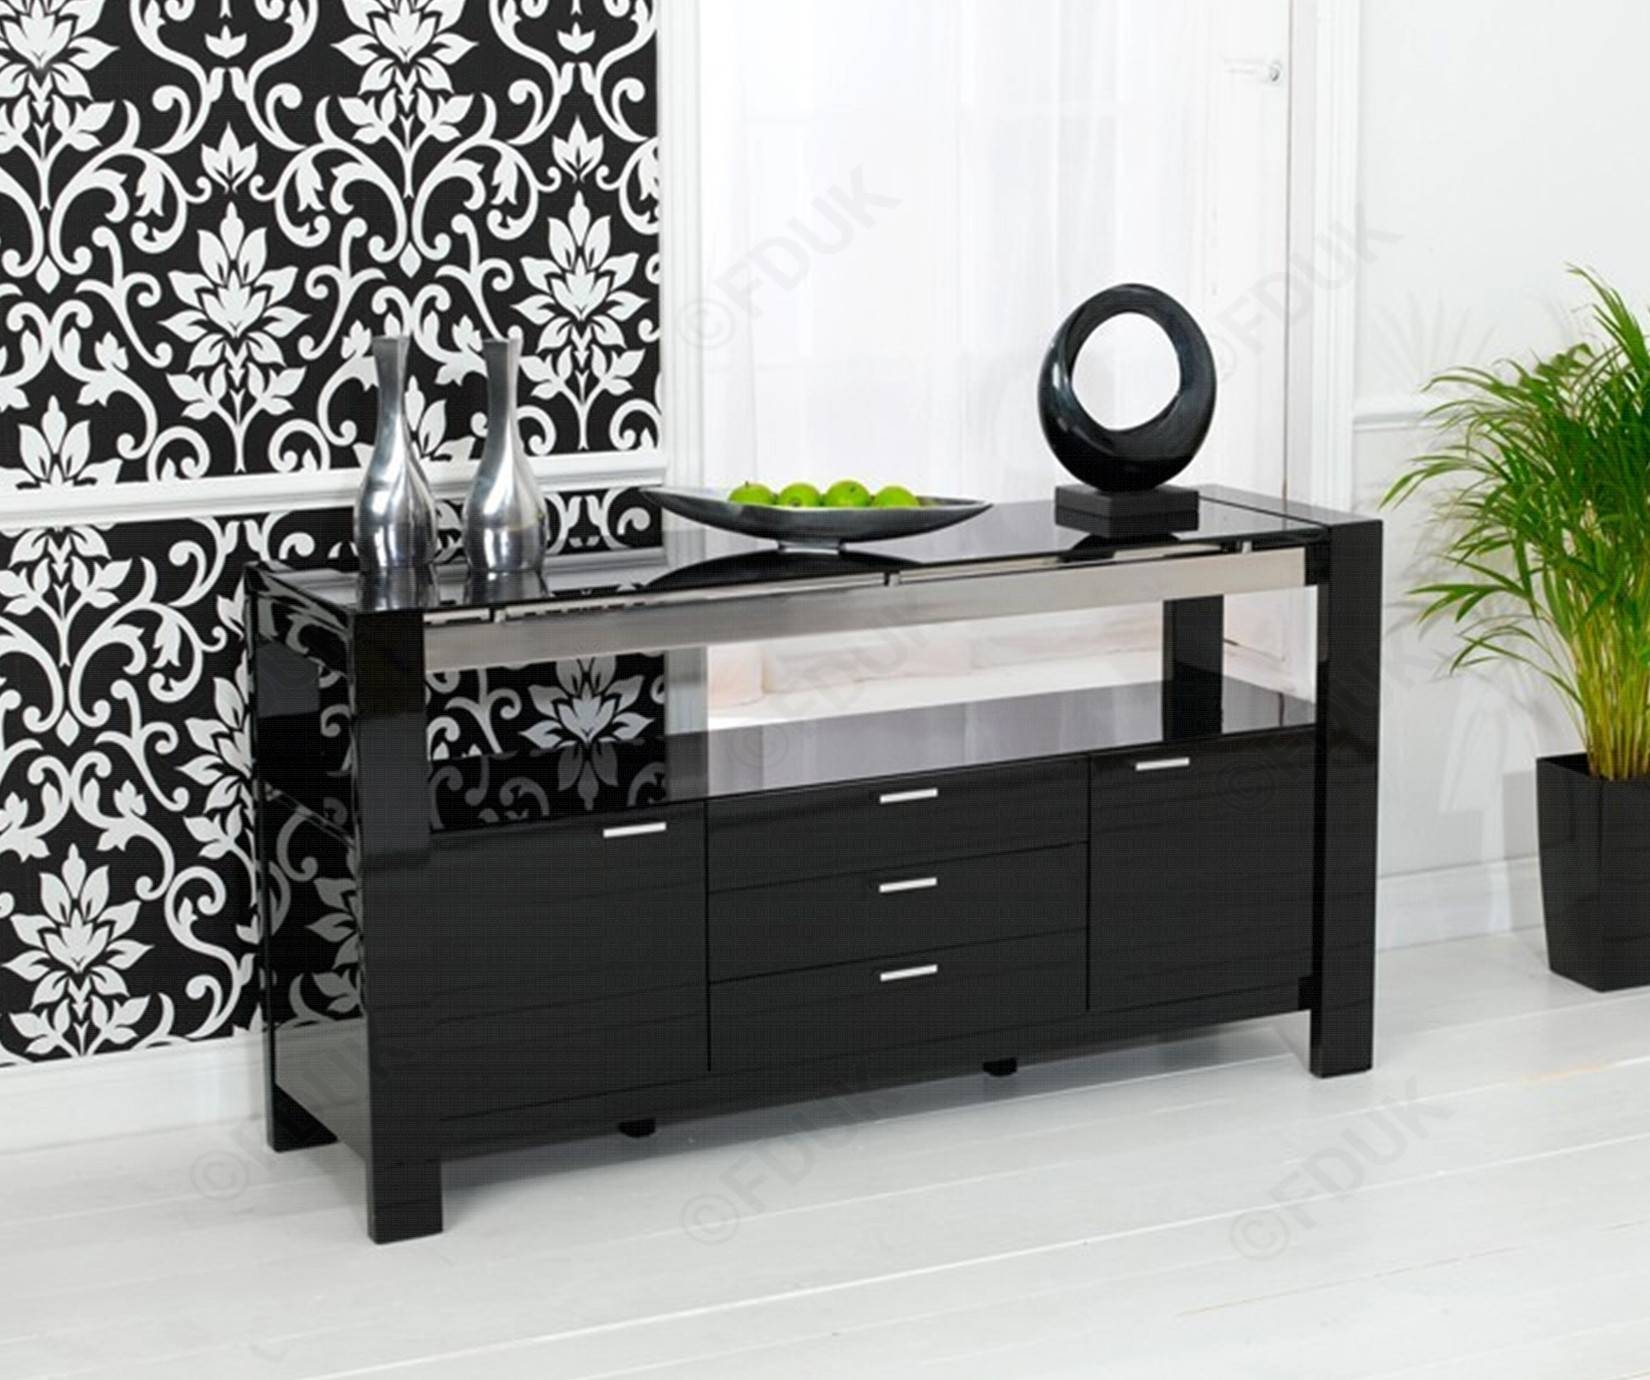 Mark Harris Sophia | Sophia High Gloss Sideboard throughout High Gloss Black Sideboards (Image 26 of 30)